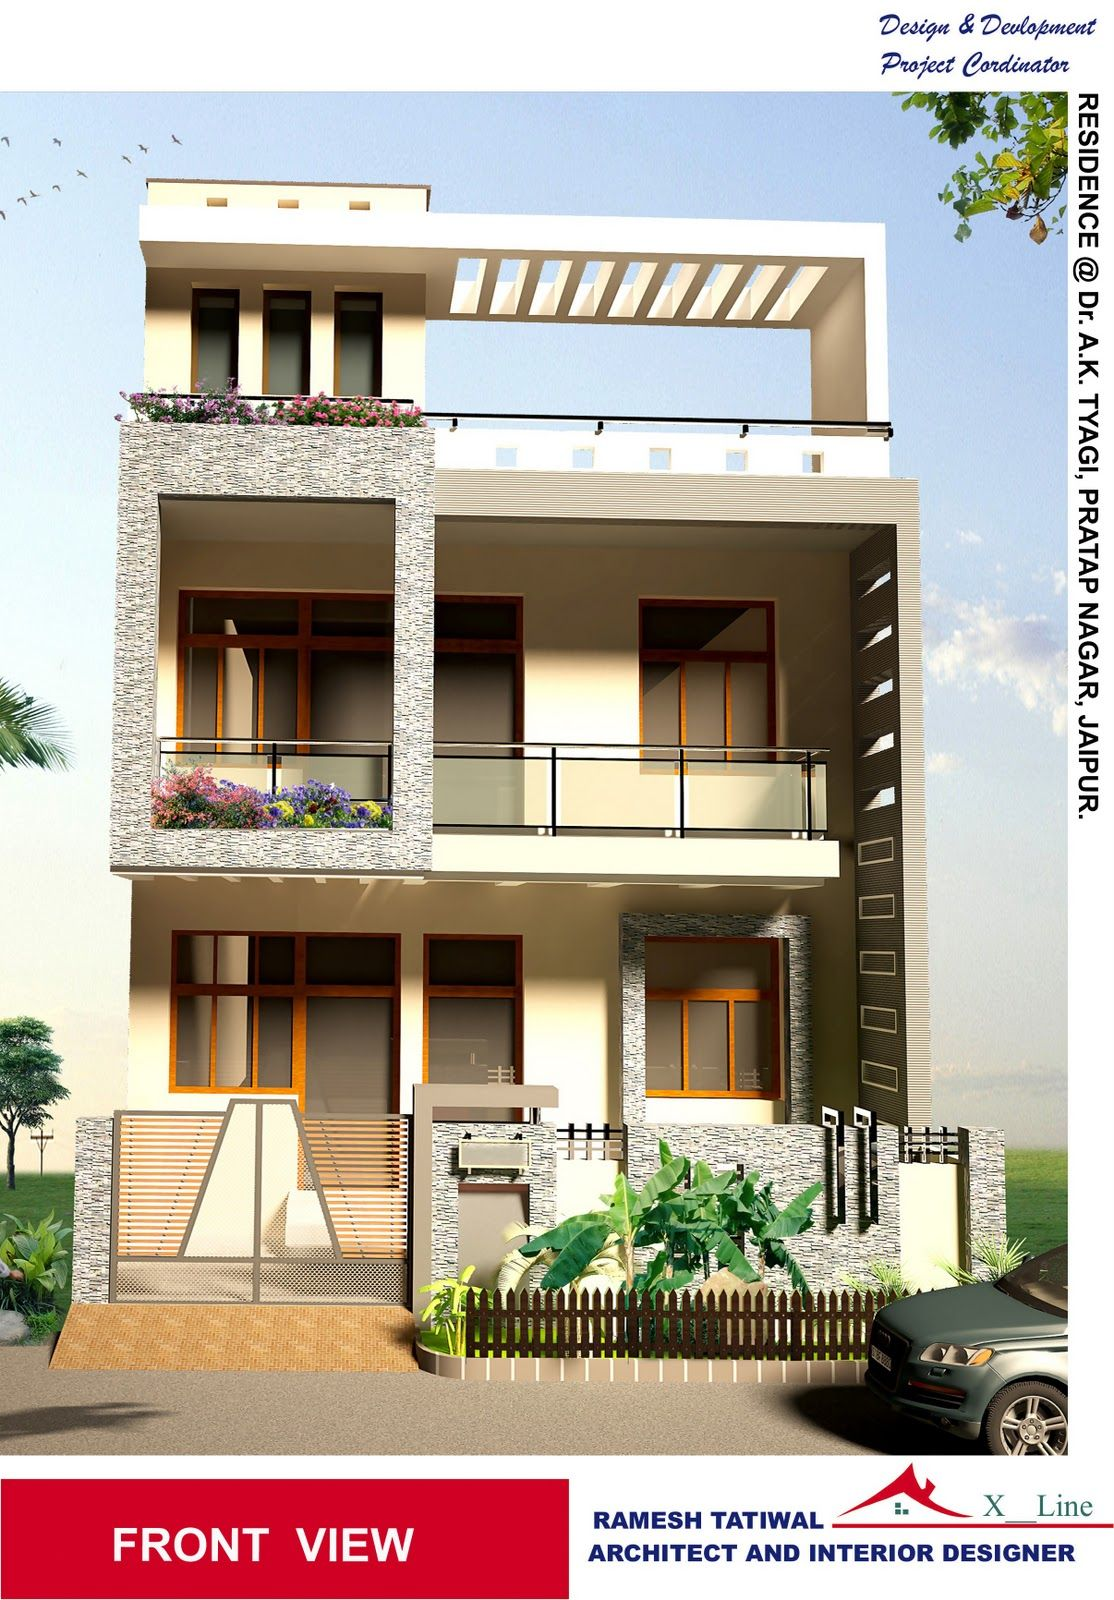 Home design house modern house for In home designer